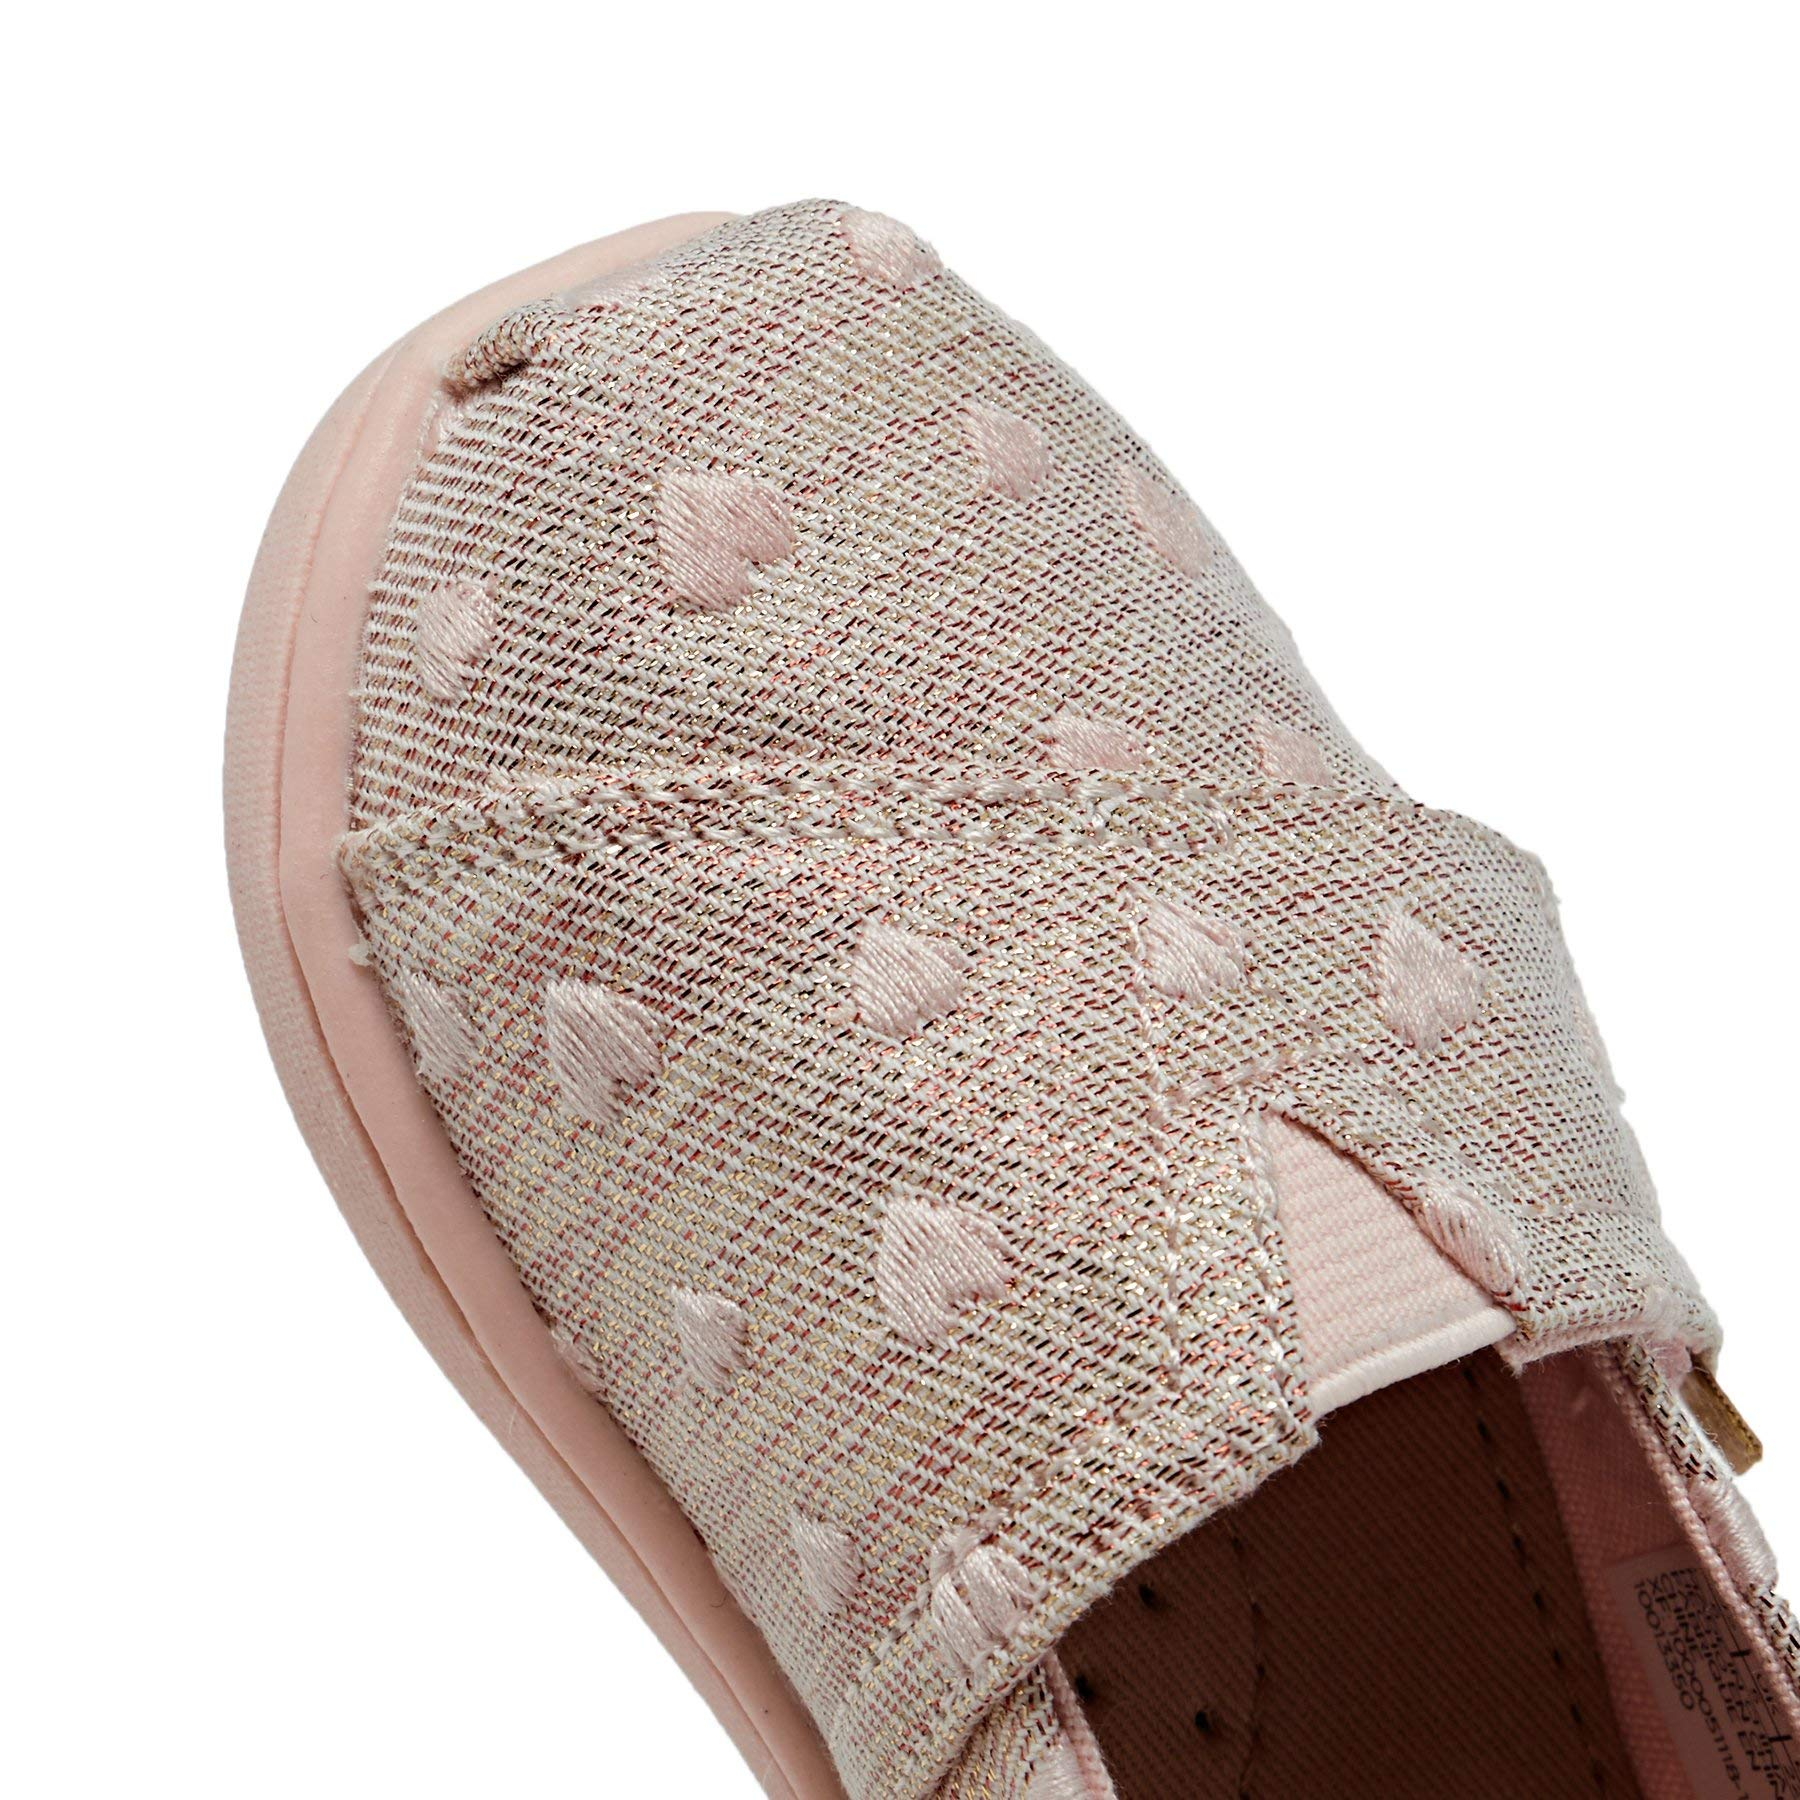 TOMS Kids Baby Girl's Alpargata (Toddler/Little Kid) Rose Cloud Heartsy Twill Glimmer Embroidery 11 M US Little Kid by TOMS Kids (Image #7)